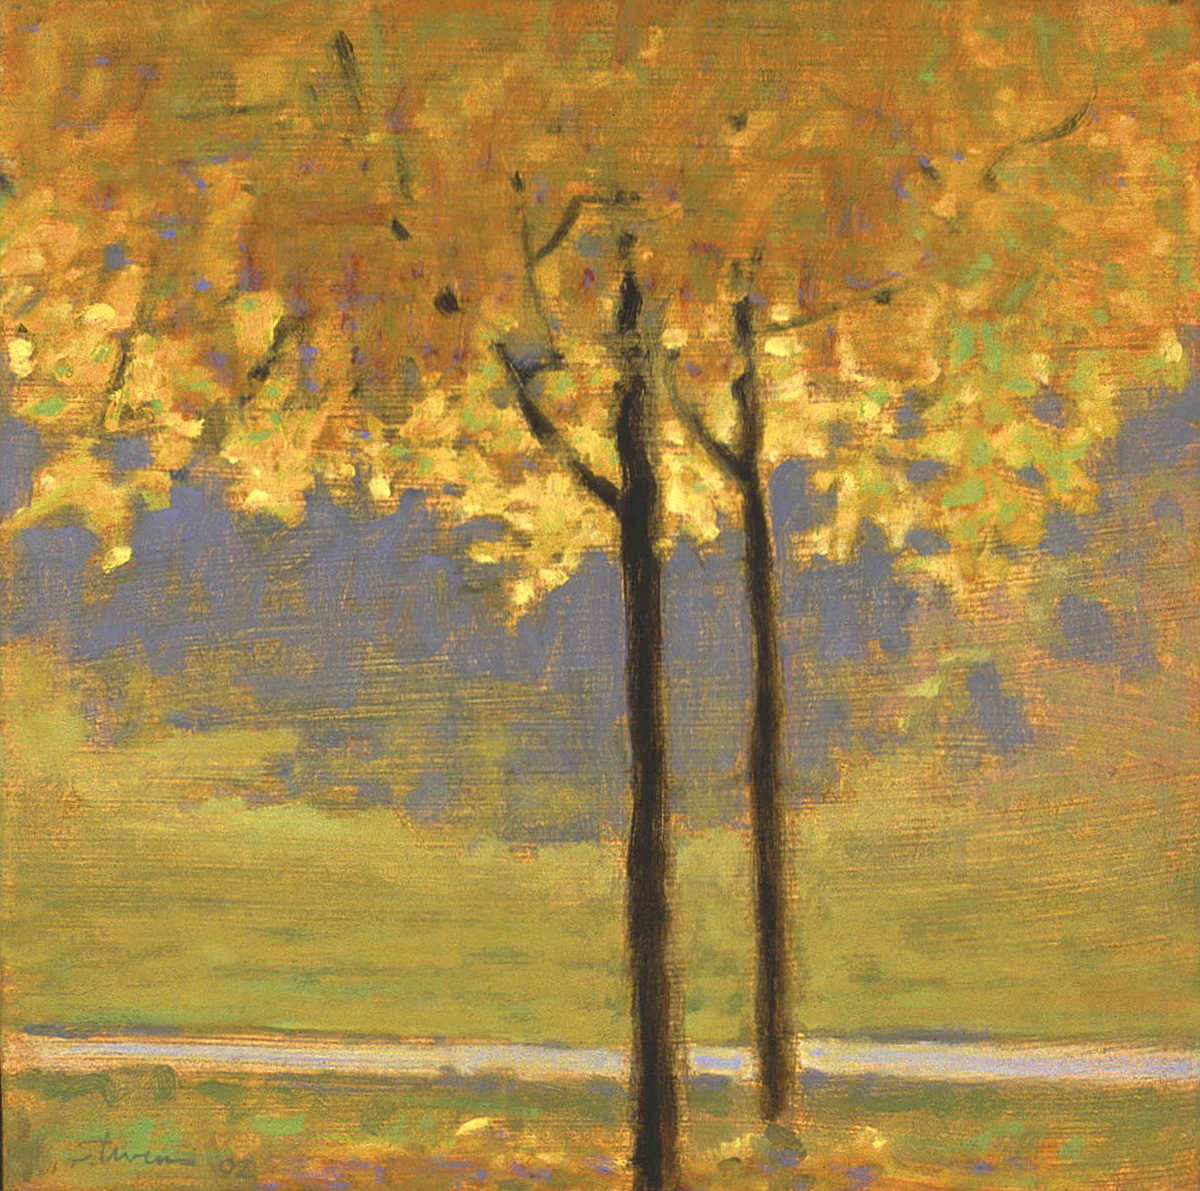 """Twin Maples With Golden Foliage     oil on panel   12 x 12""""   2002"""